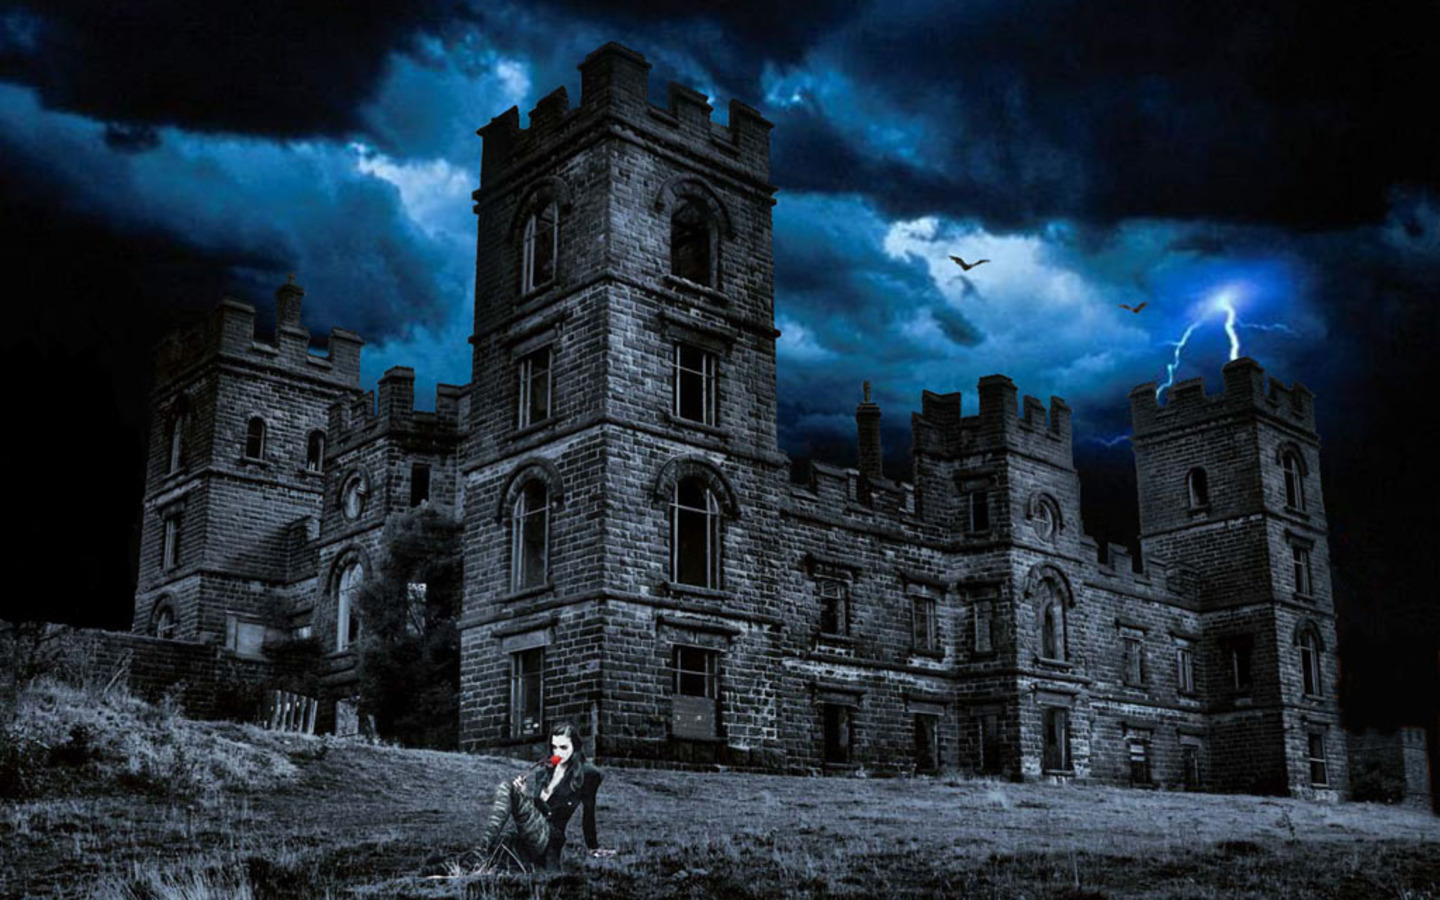 Free animated haunted house wallpaper wallpapersafari for Unusual wallpaper for home